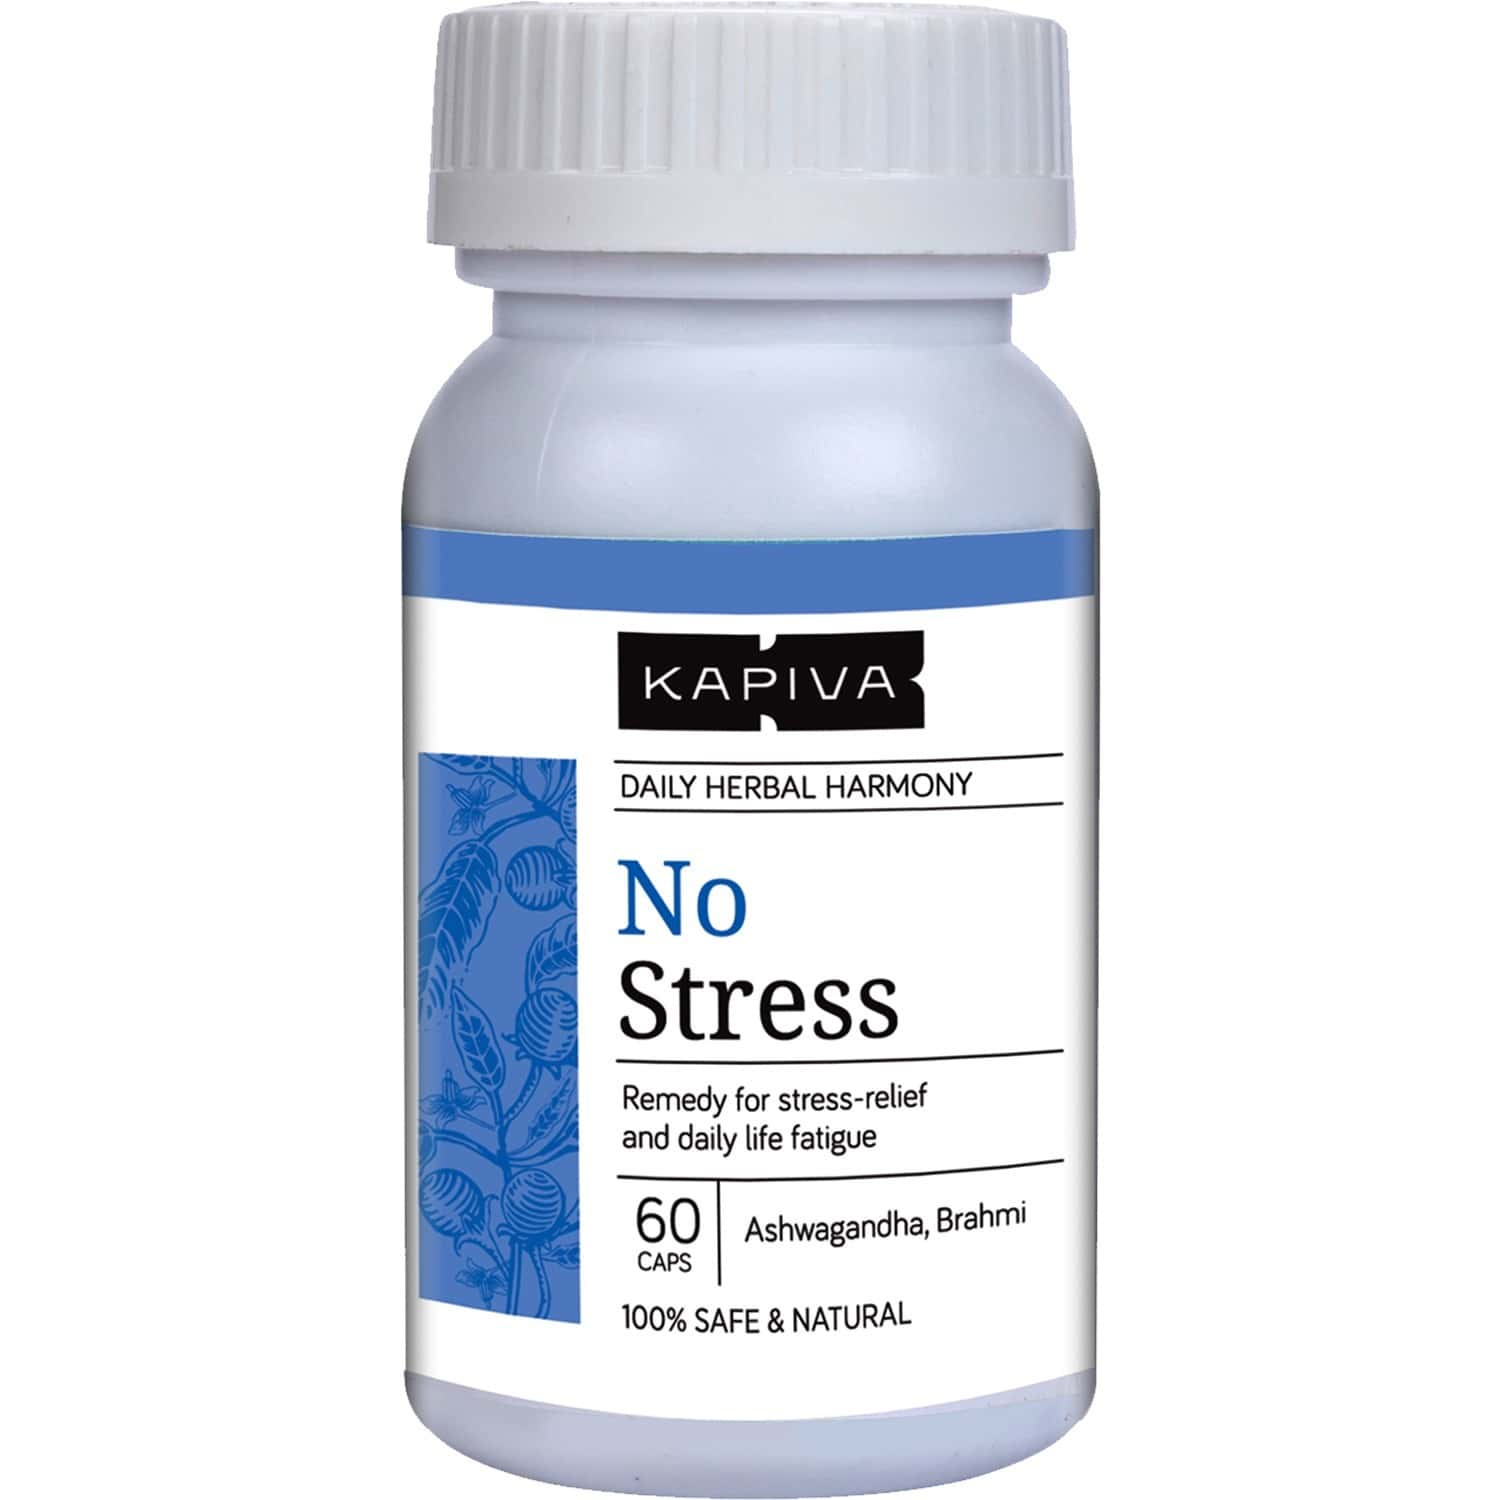 Kapiva No Stress Capsules - Helps Relieve Stress Fatigue And Tension 60 Capsules